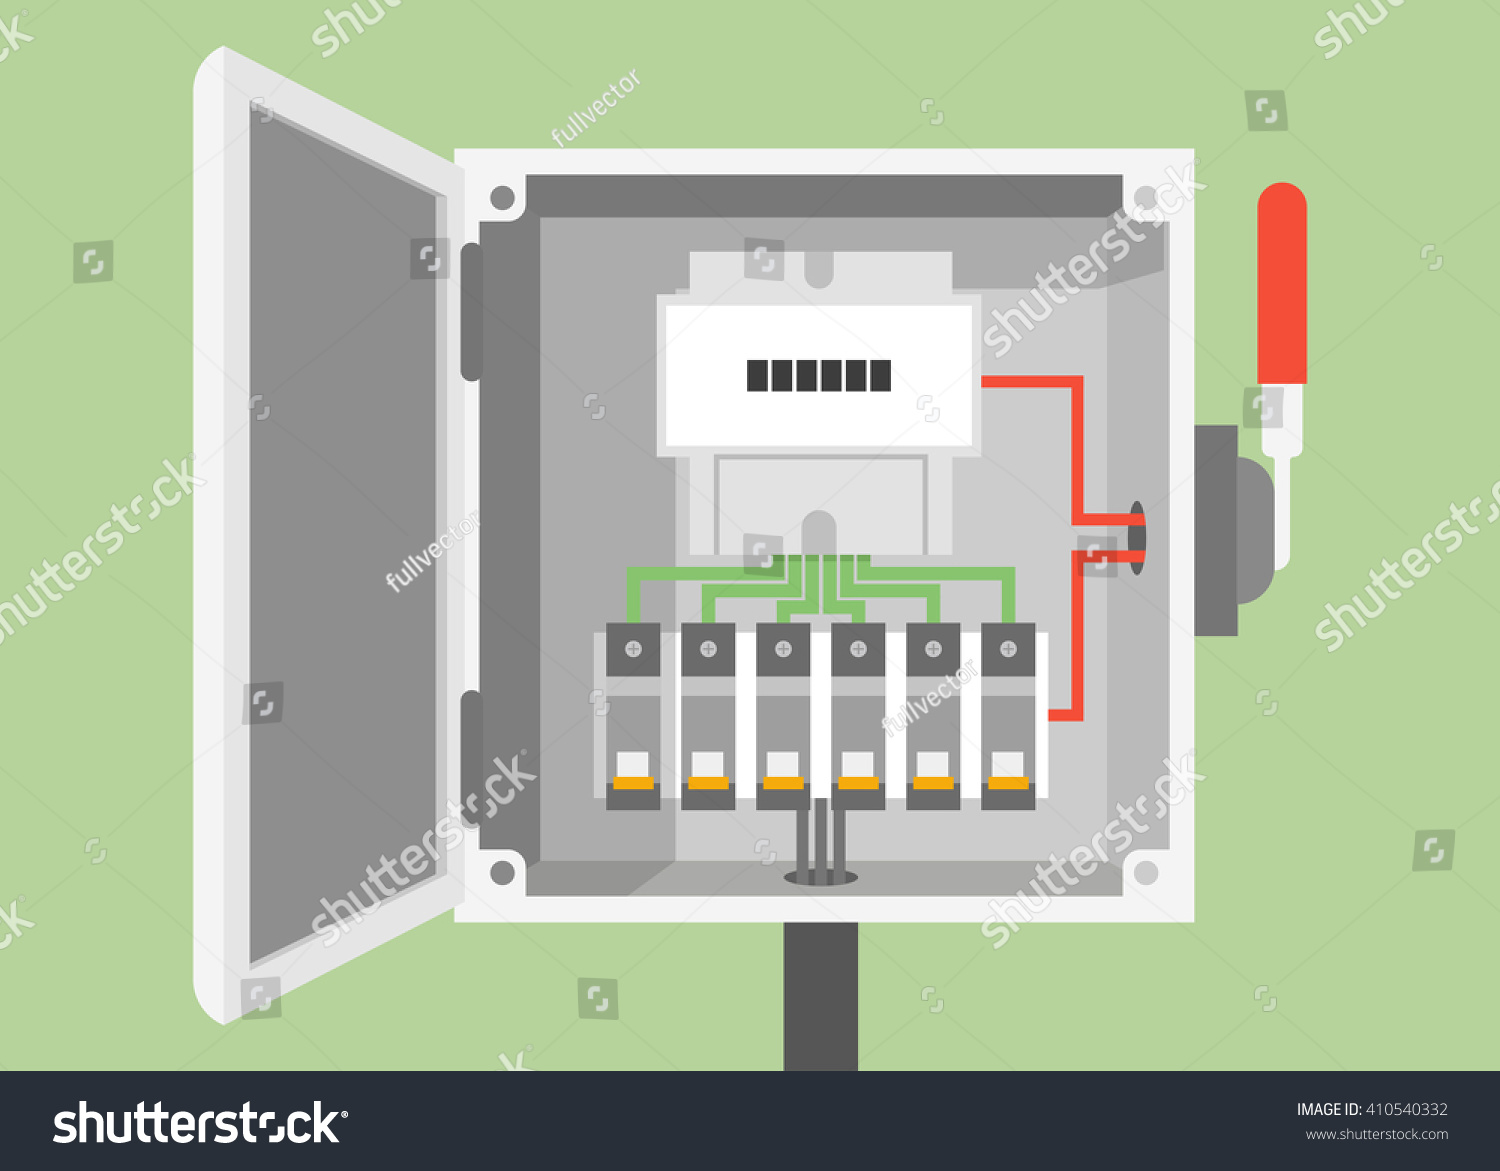 Breakers Switch Vector Flat Fuse Stock Royalty Free Electric Panel Boxes Box Circuit Electrical